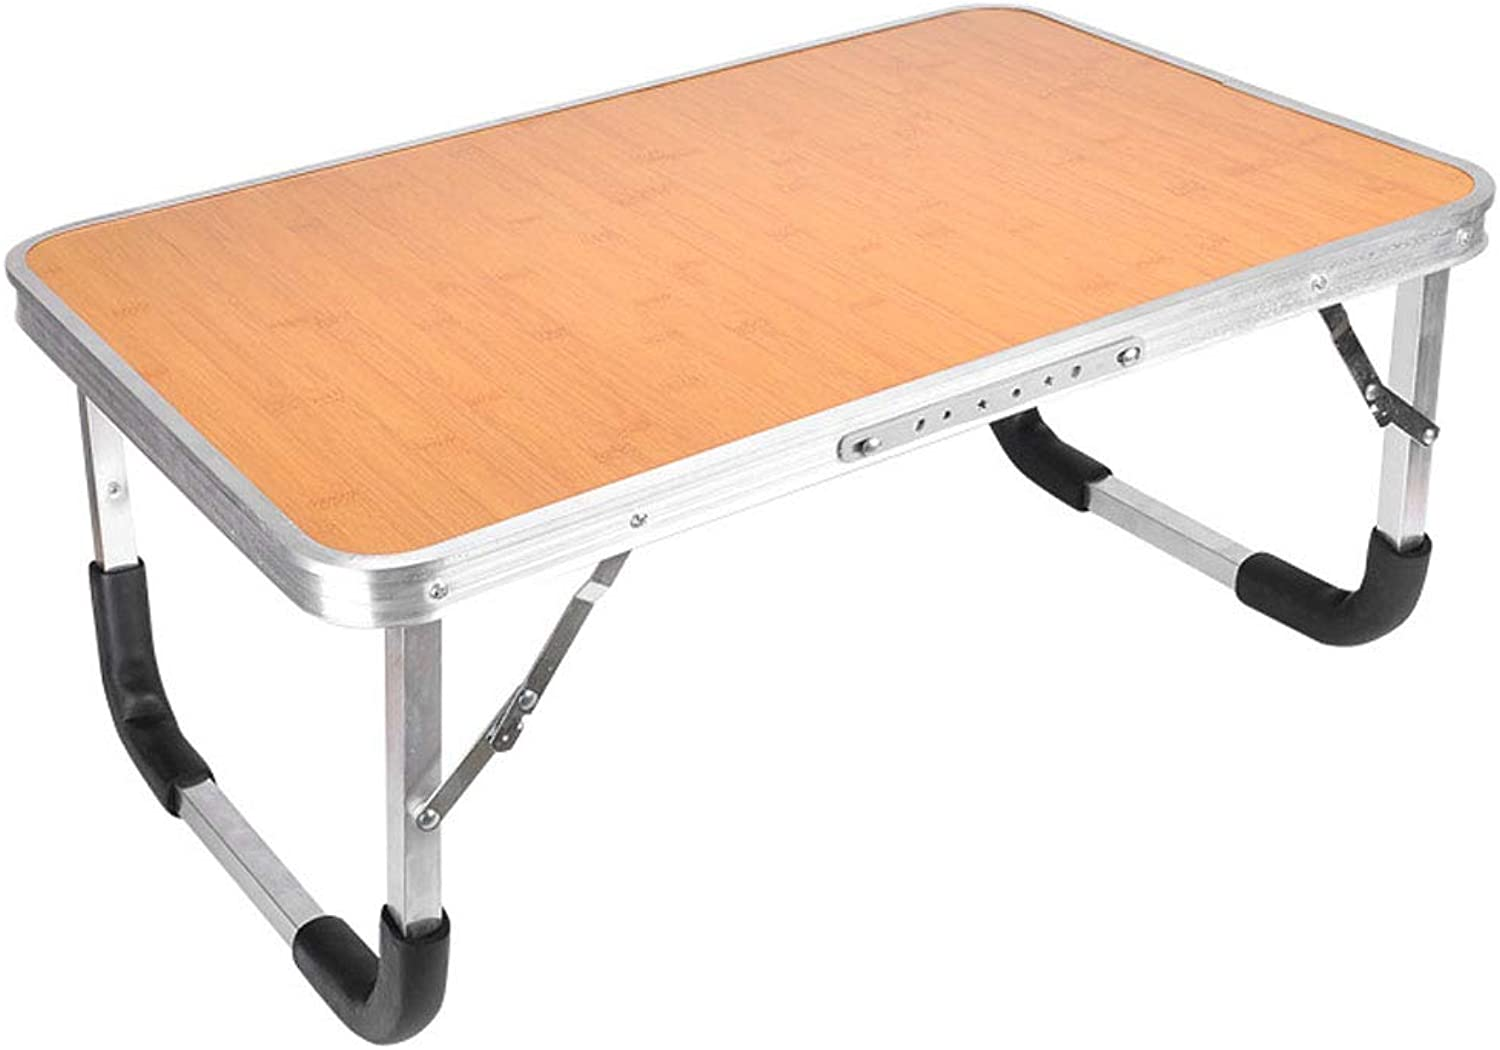 Laptop Table Aluminum Folding Table Lazy Table Notebook Table Student Dormitory Folding Computer Table